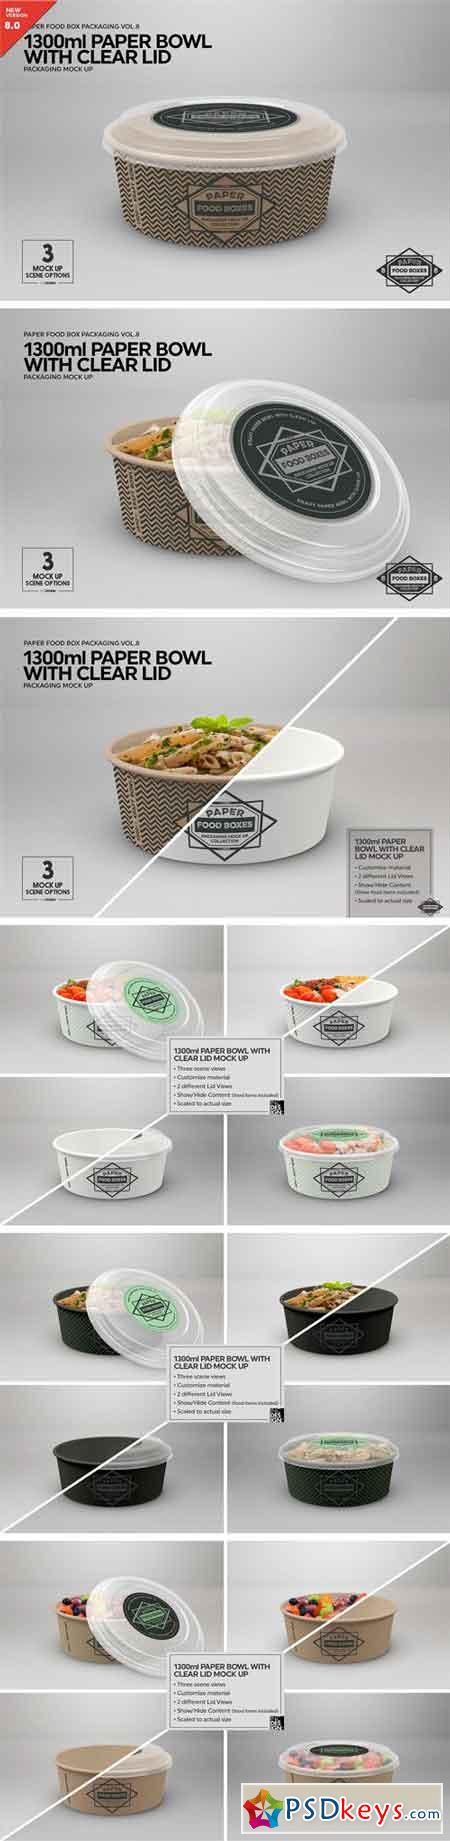 1300ml Paper Bowl Clear Lid MockUp 2181793